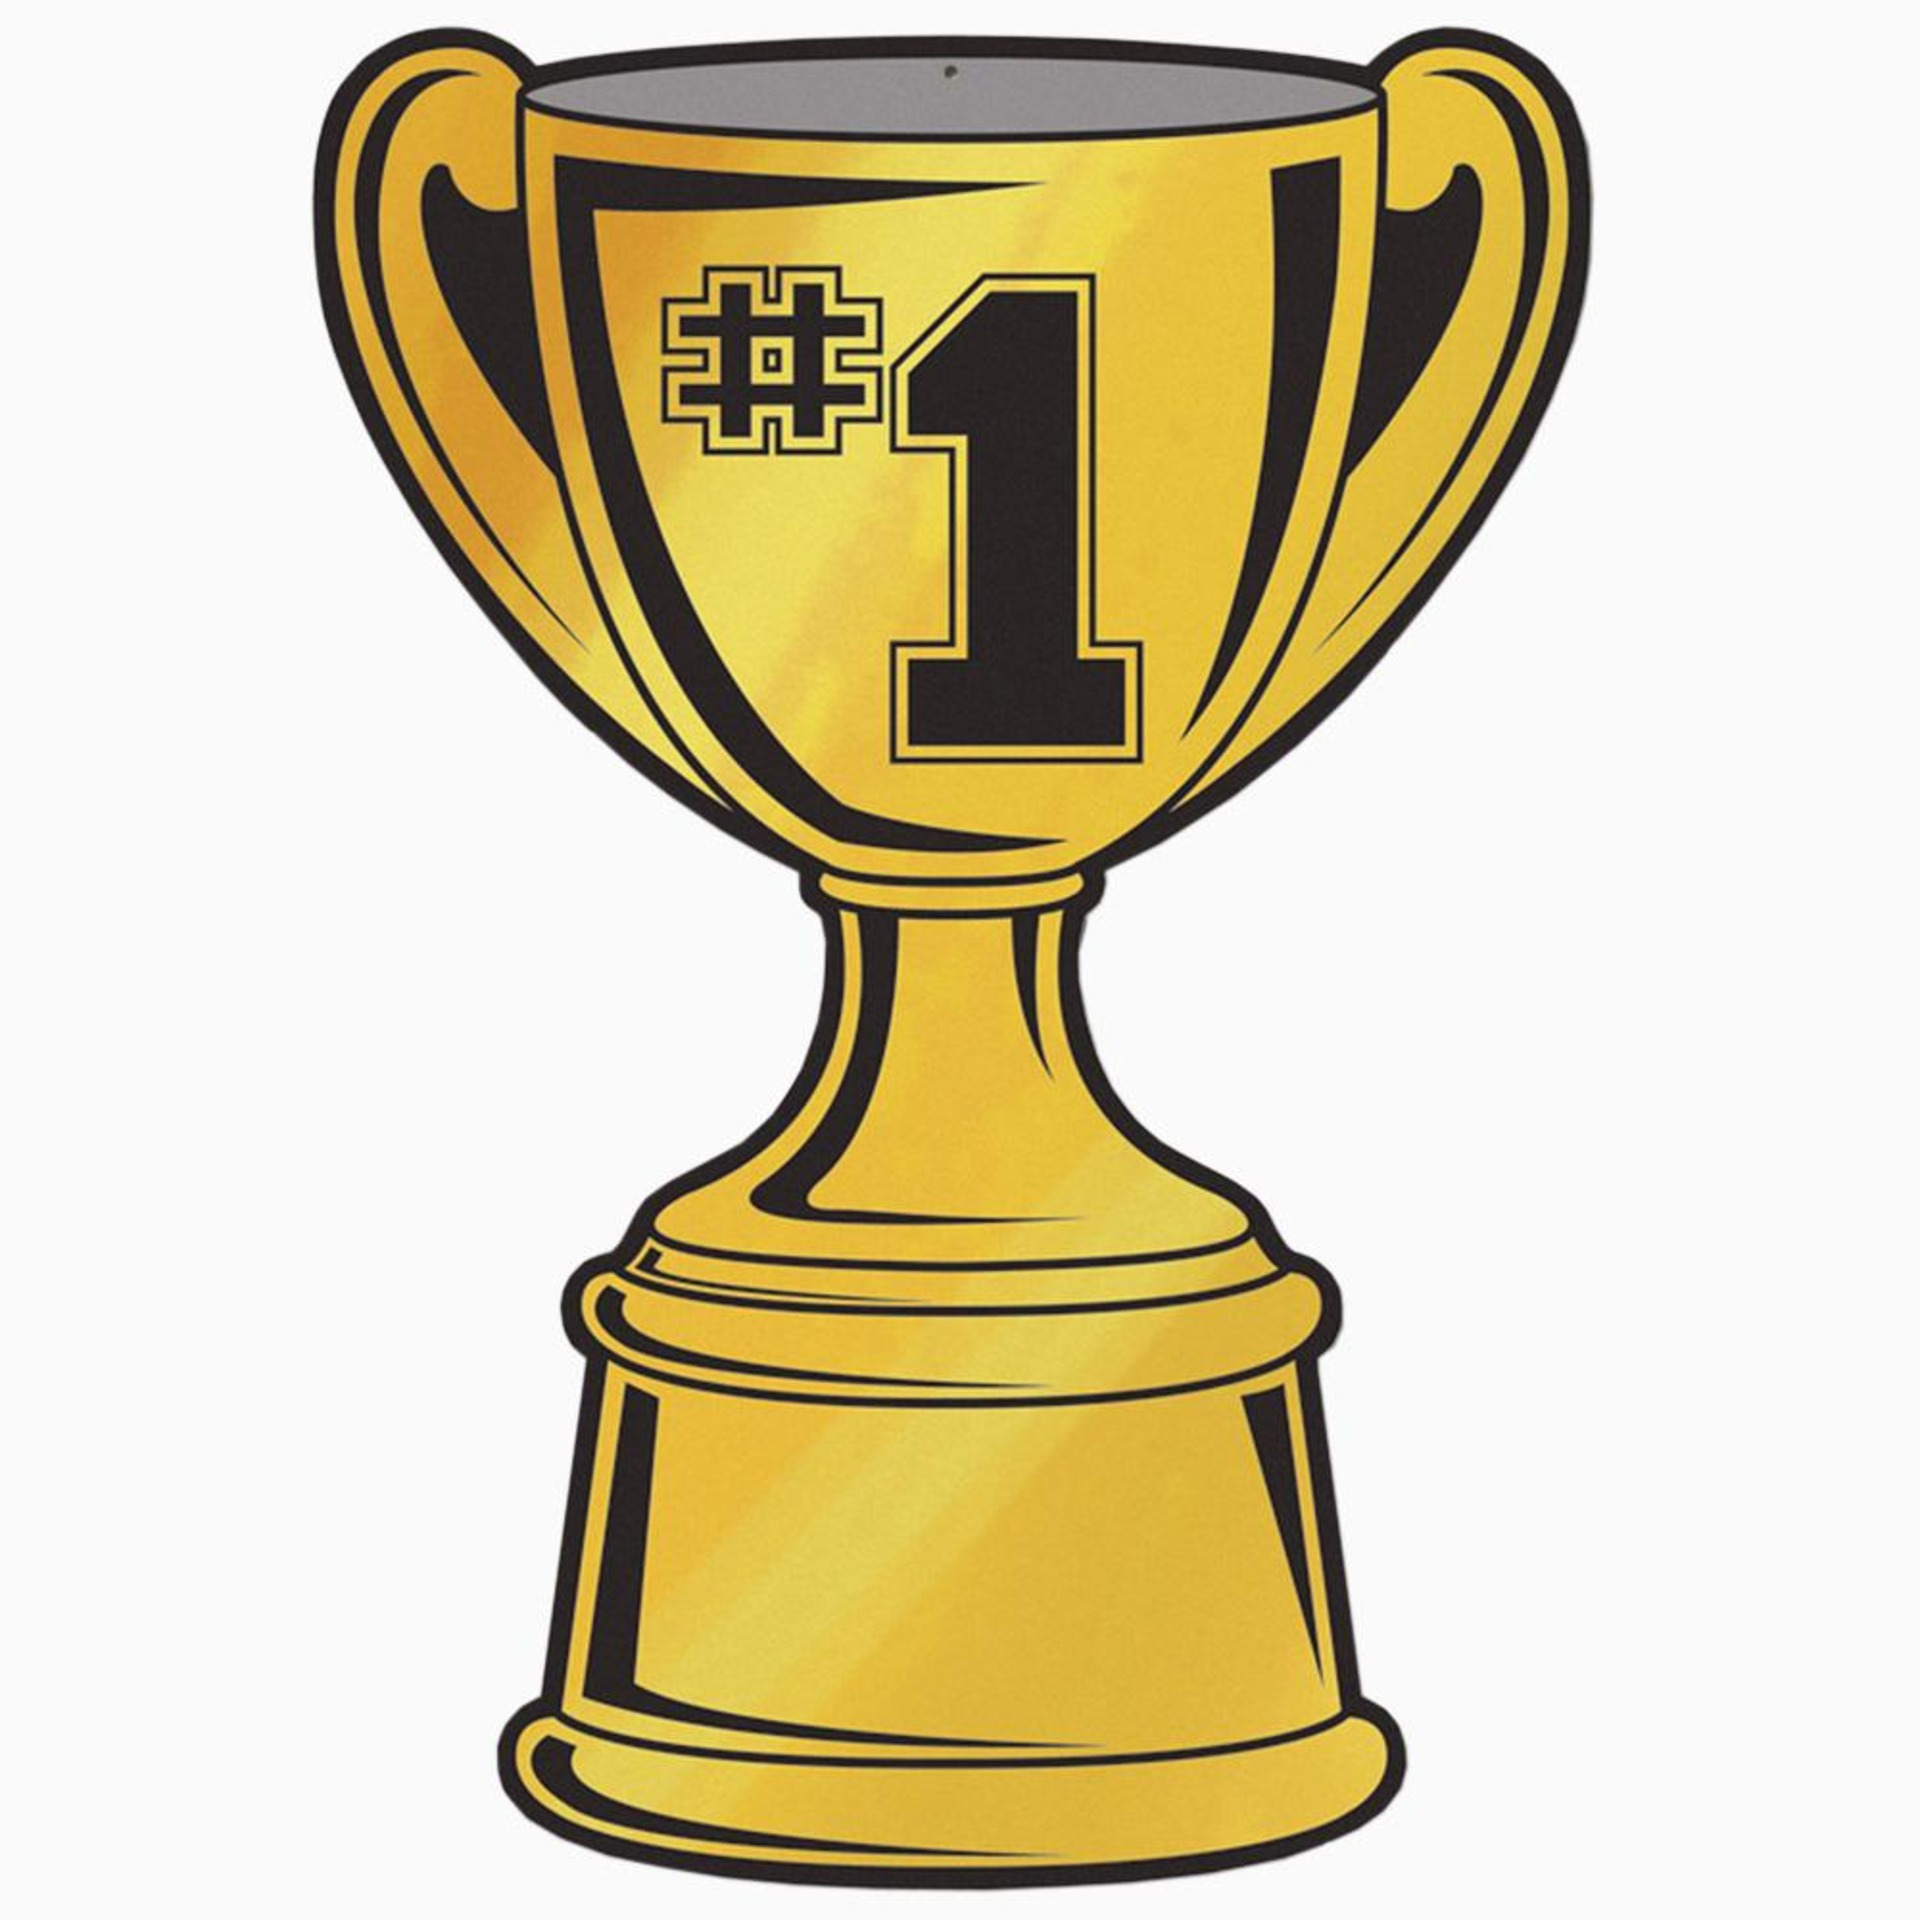 1 clipart trophy. Free image download clip